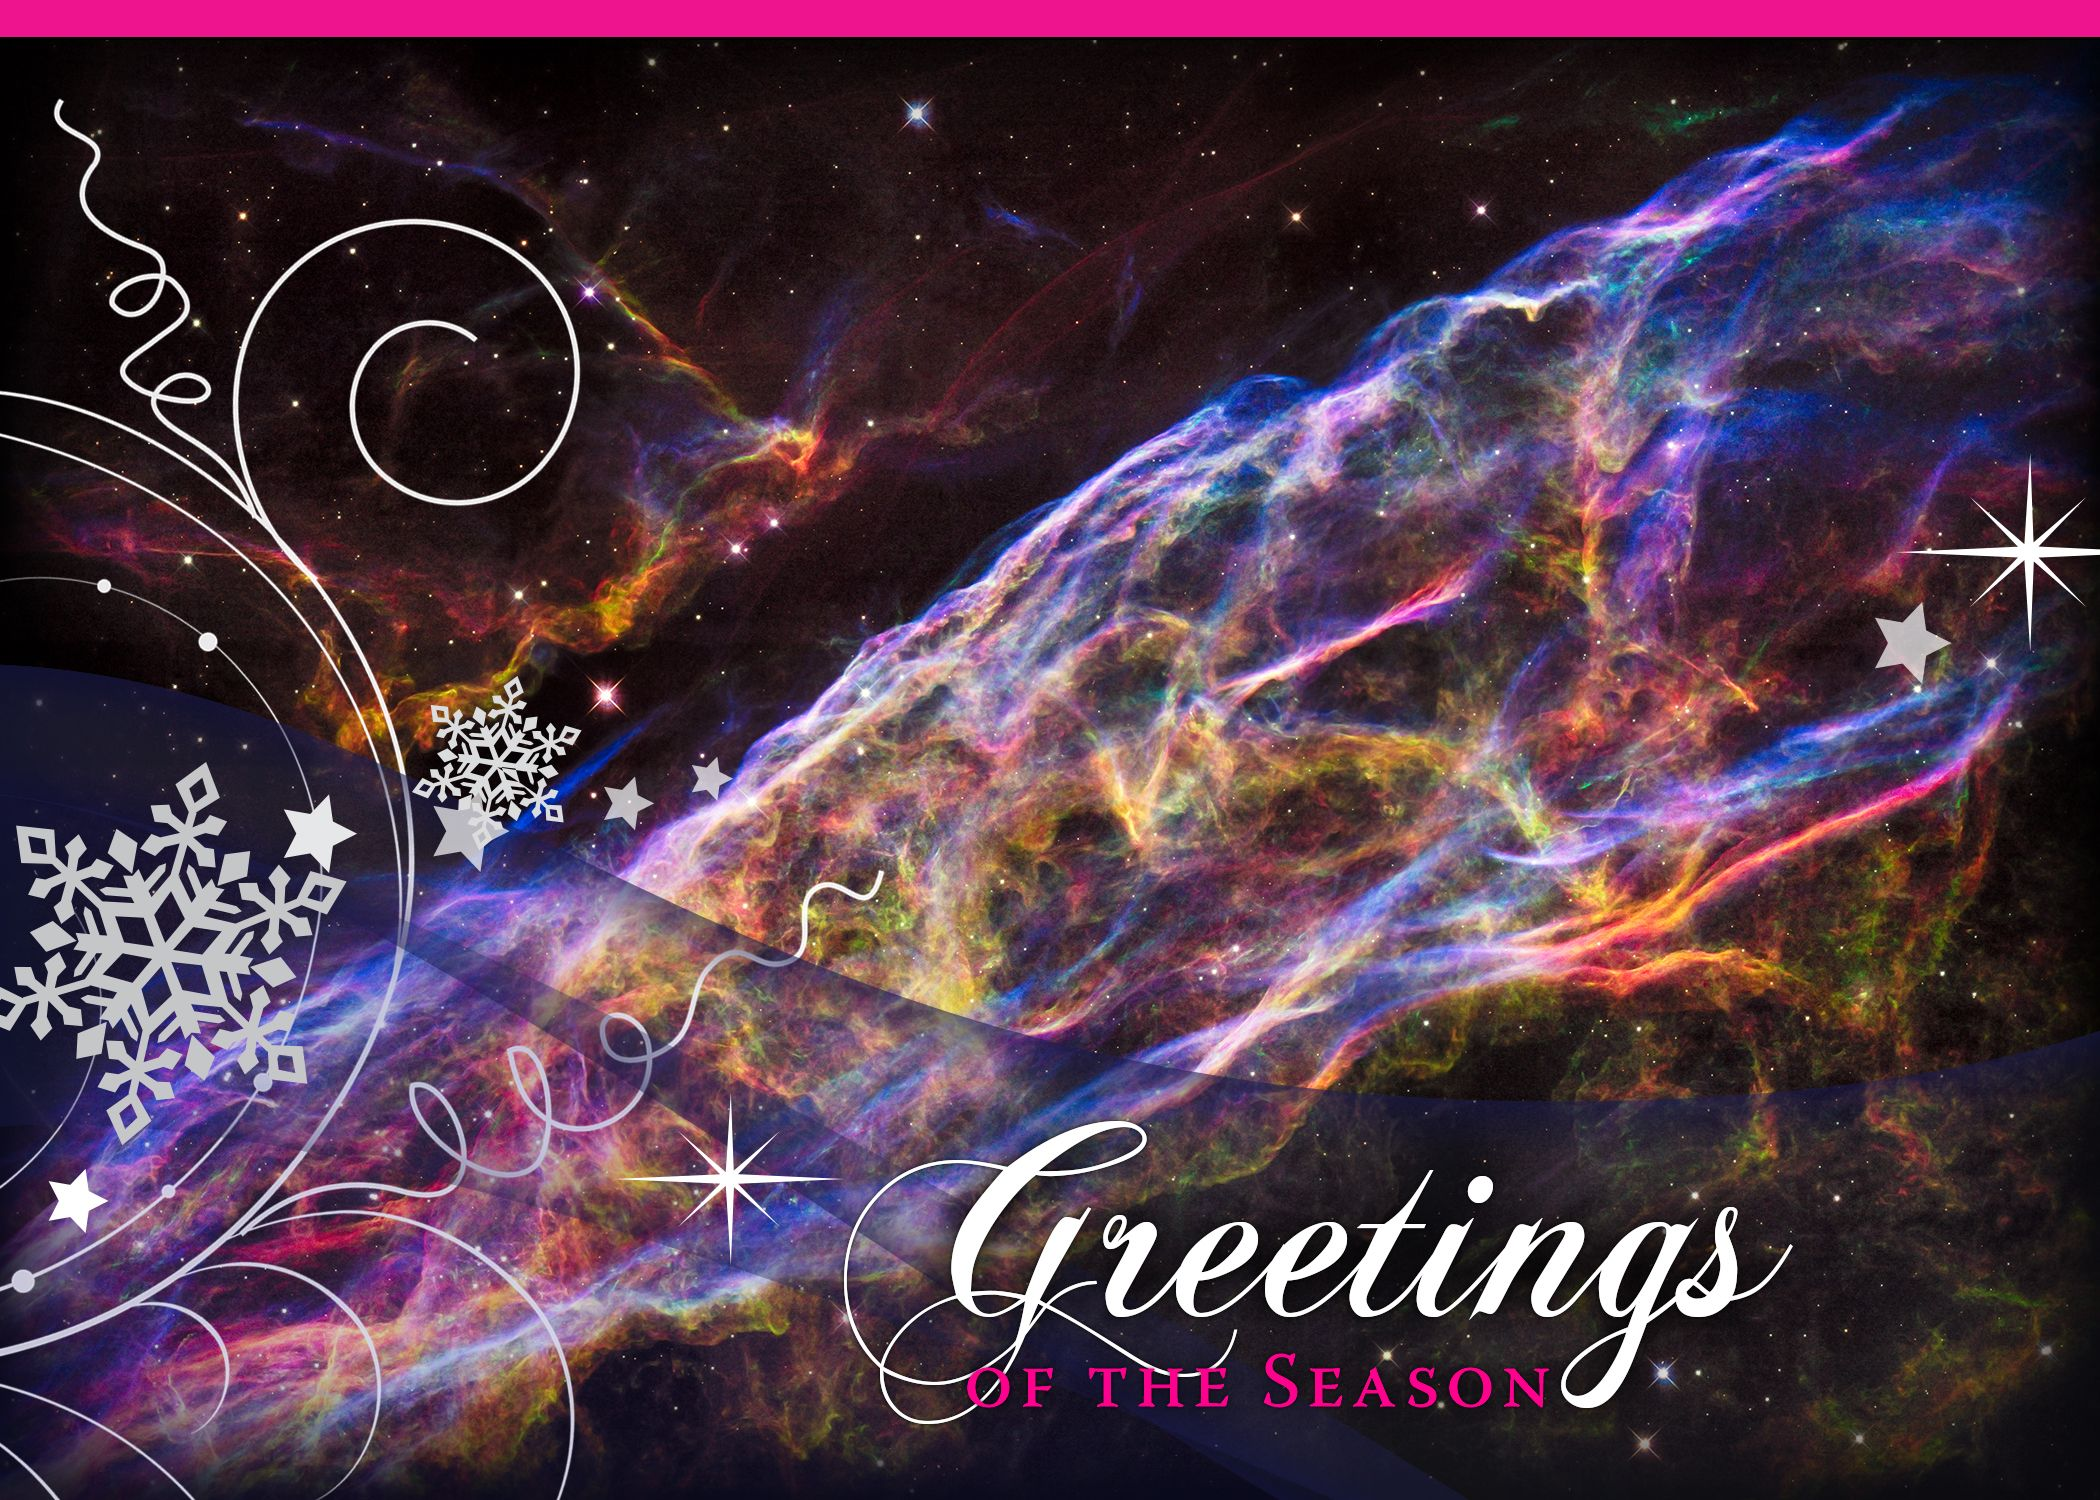 Hubble space telescope holiday cards are back send seasons hubble space telescope holiday cards are back send seasons greetings to loved ones with free m4hsunfo Gallery